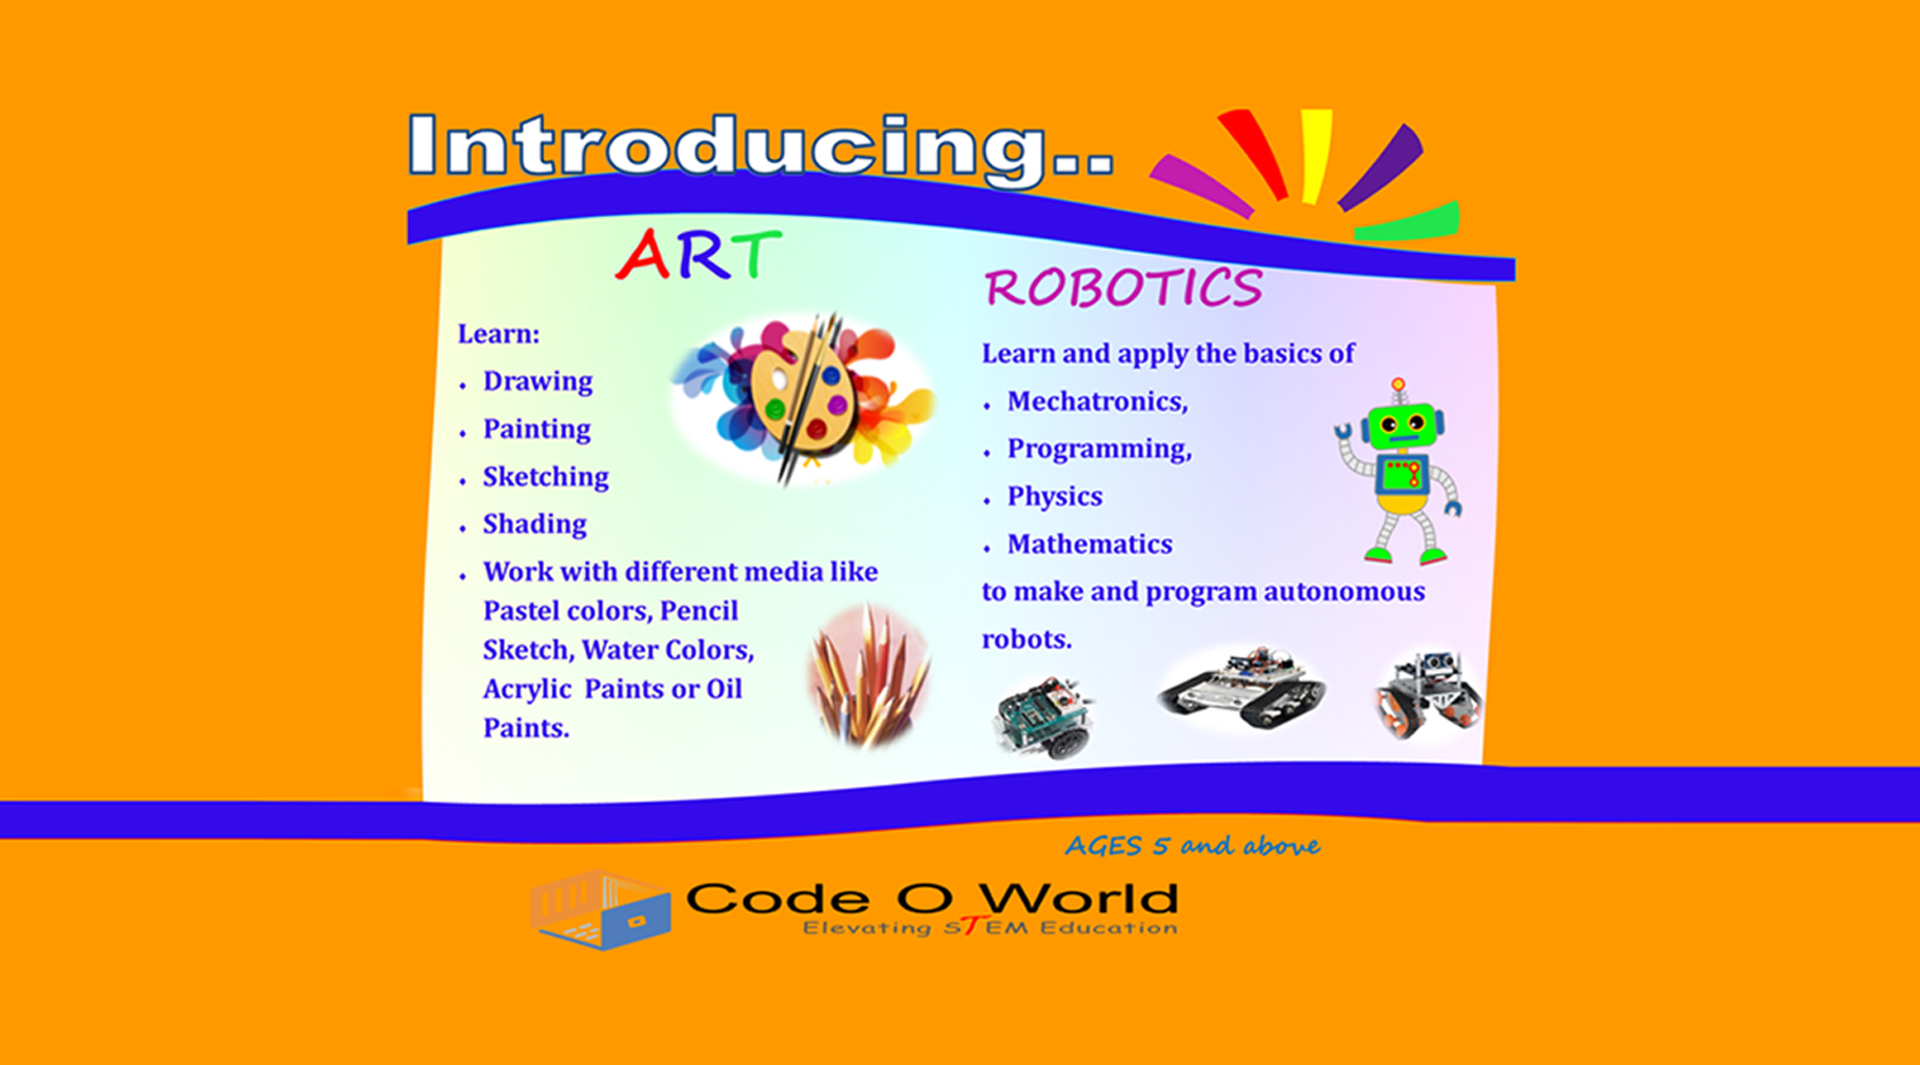 Coding For Kids_Code O World_ART_Robotics